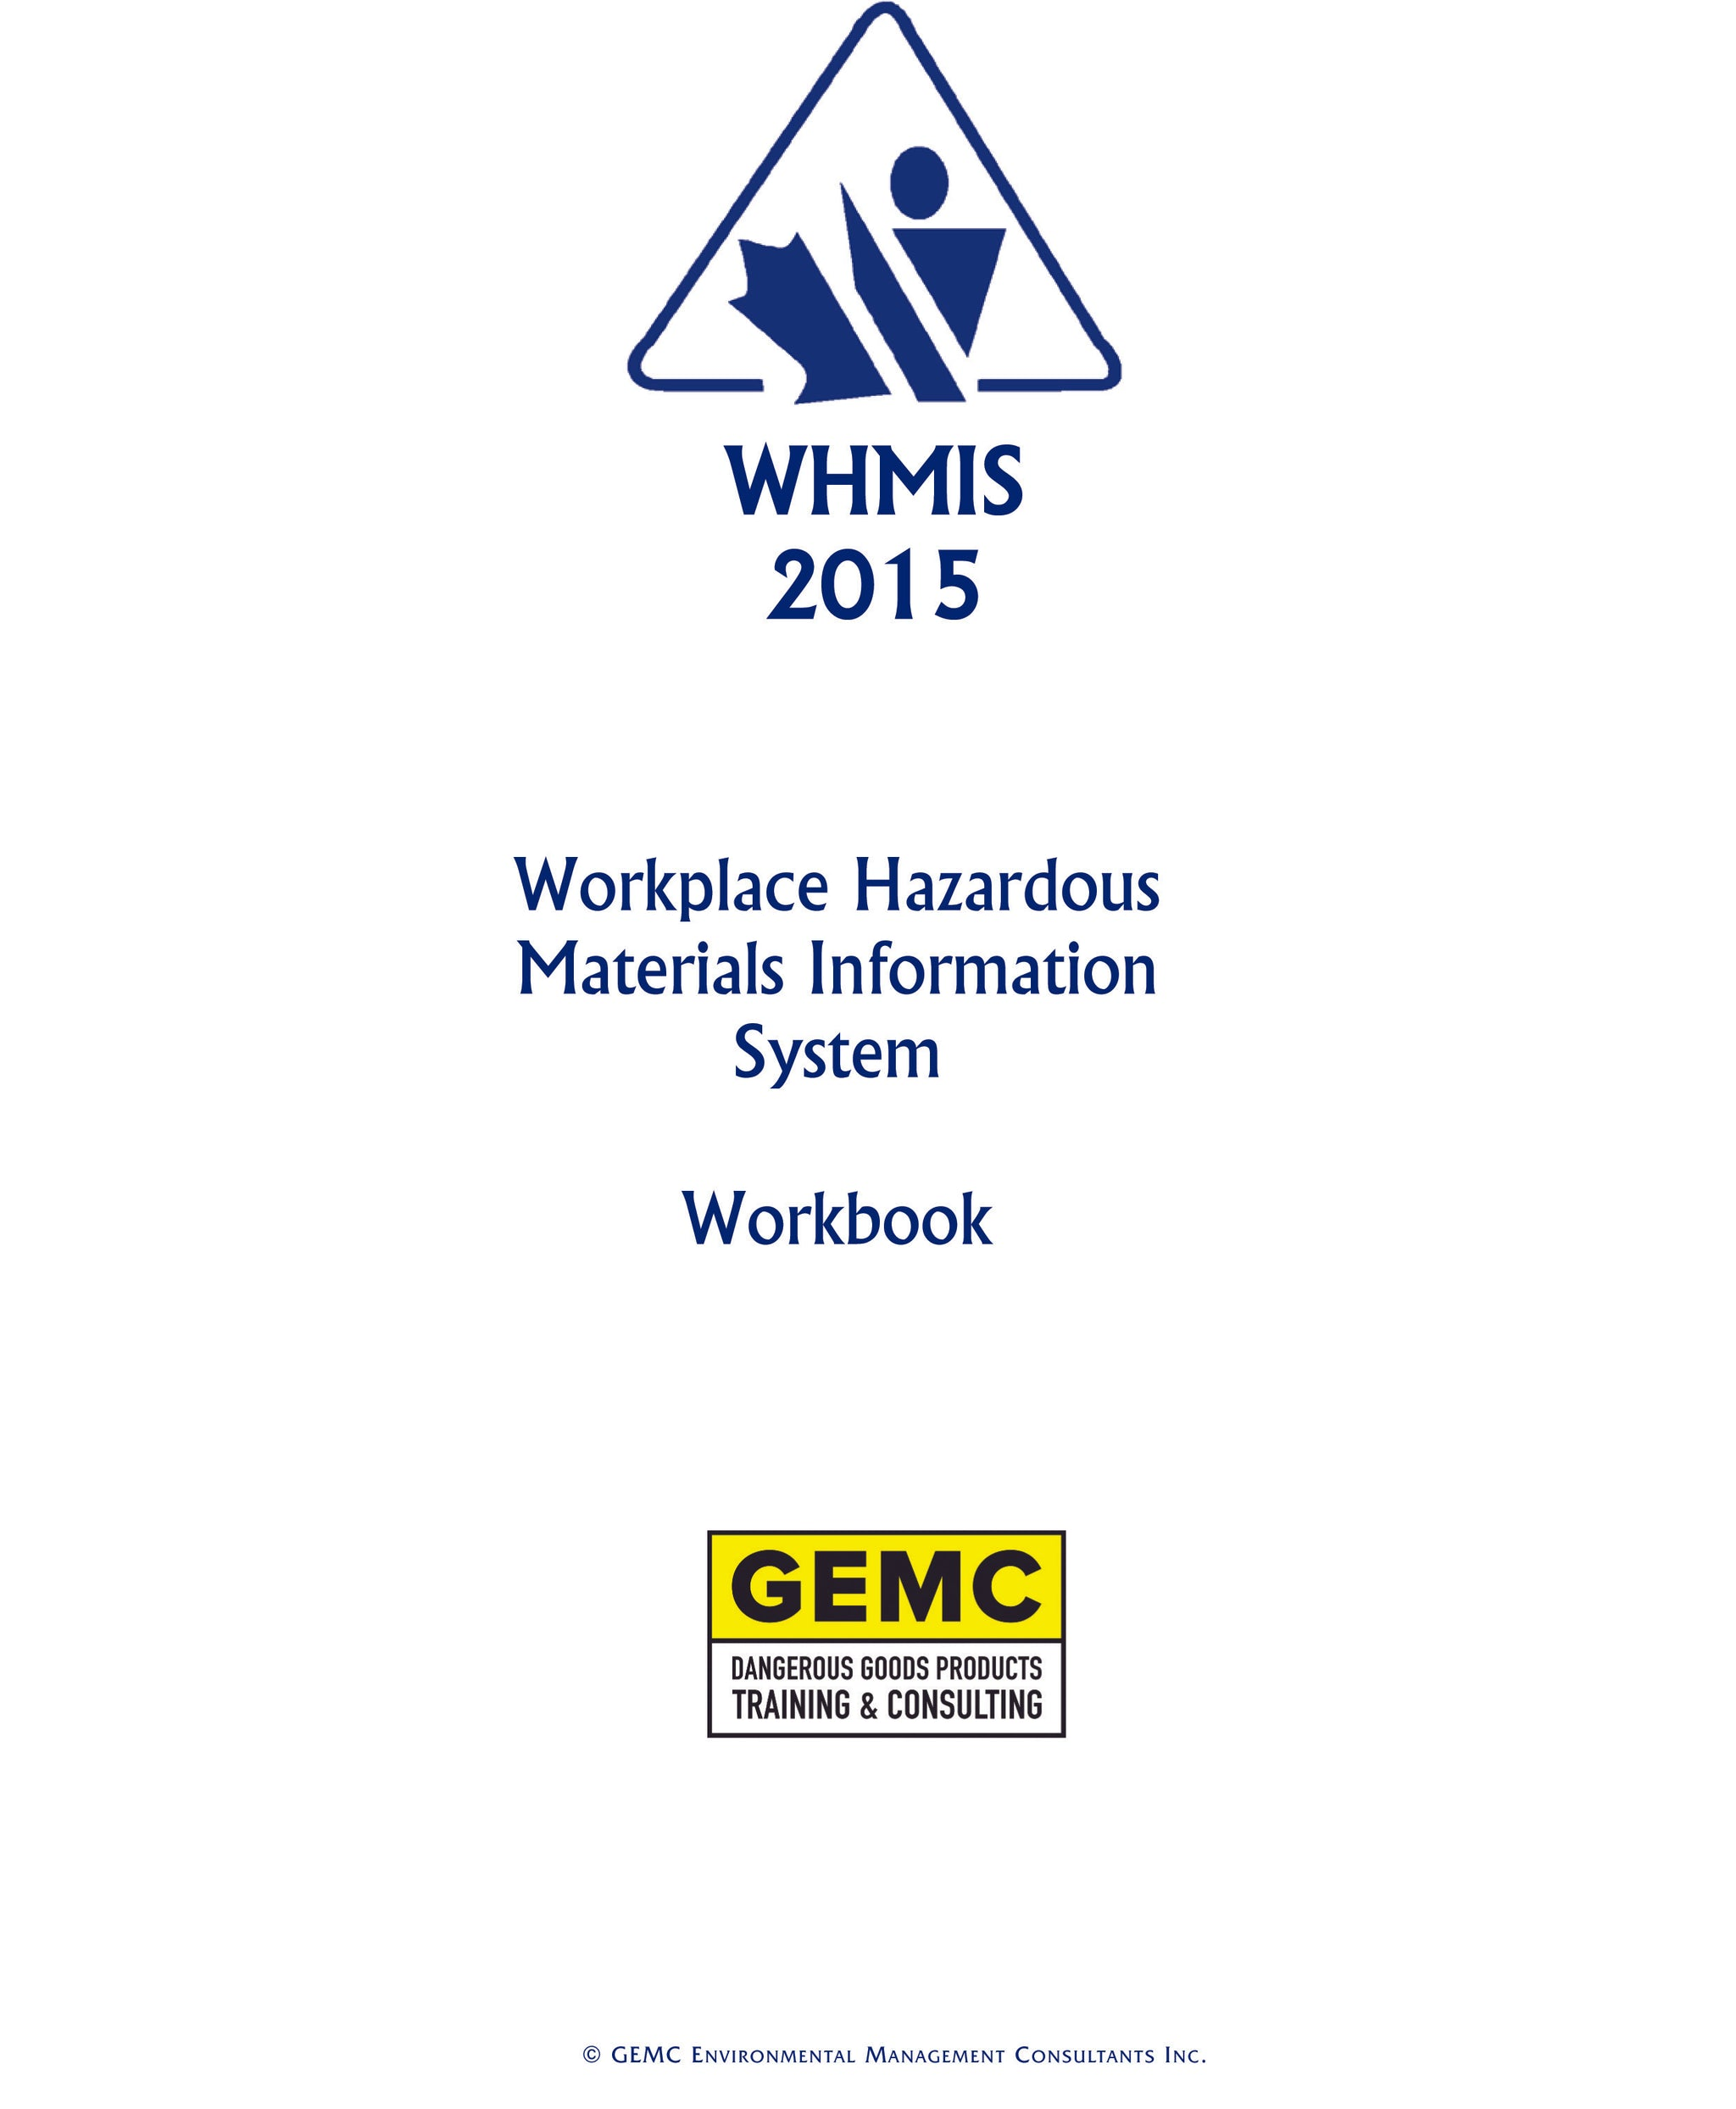 WHMIS Self-Teach Training Kit